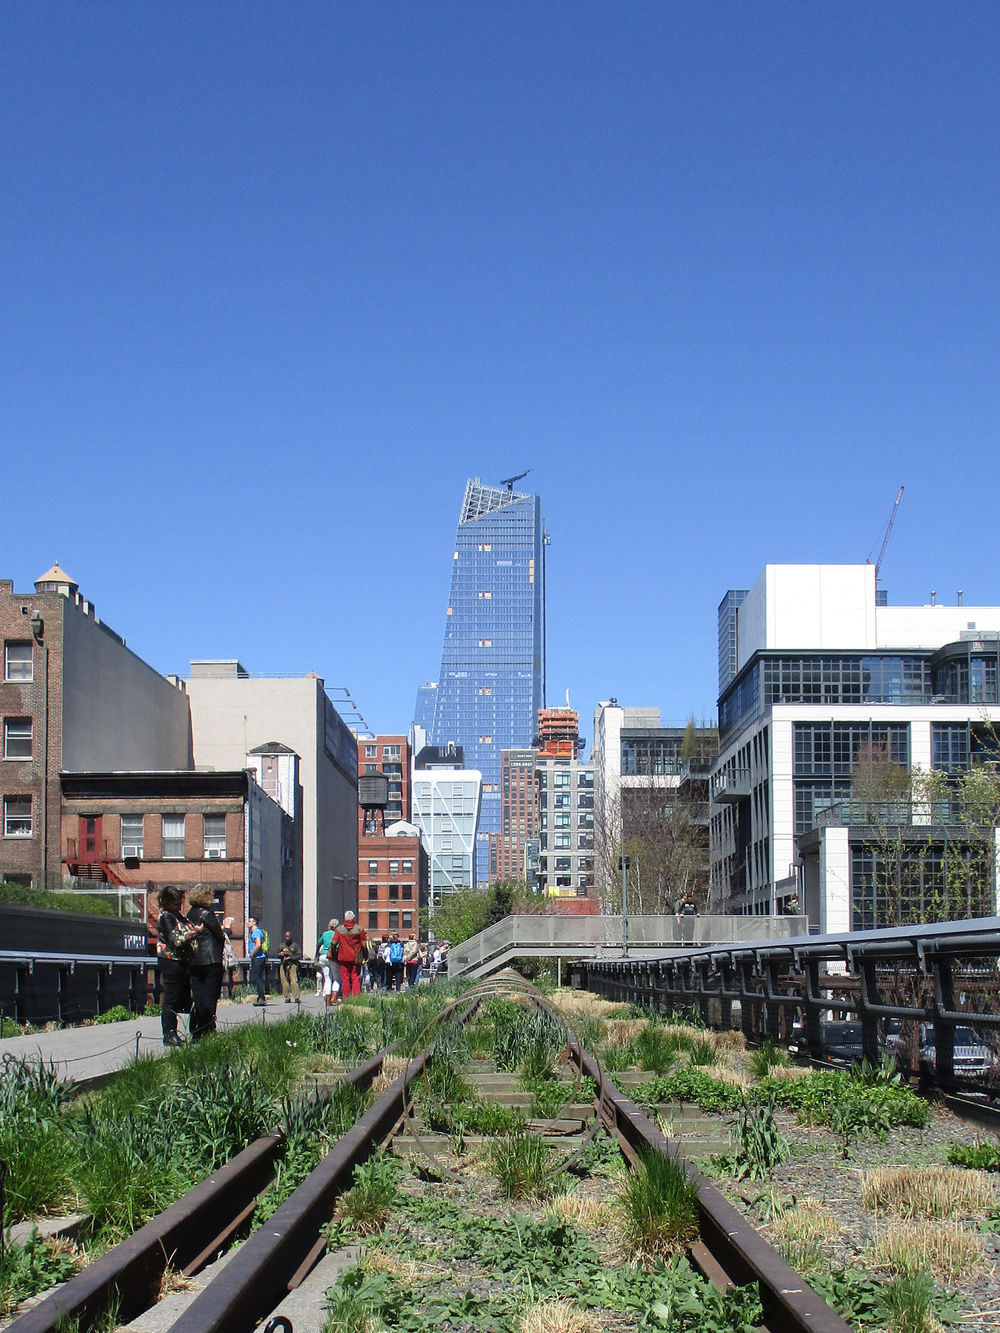 The High Line with it's art features.